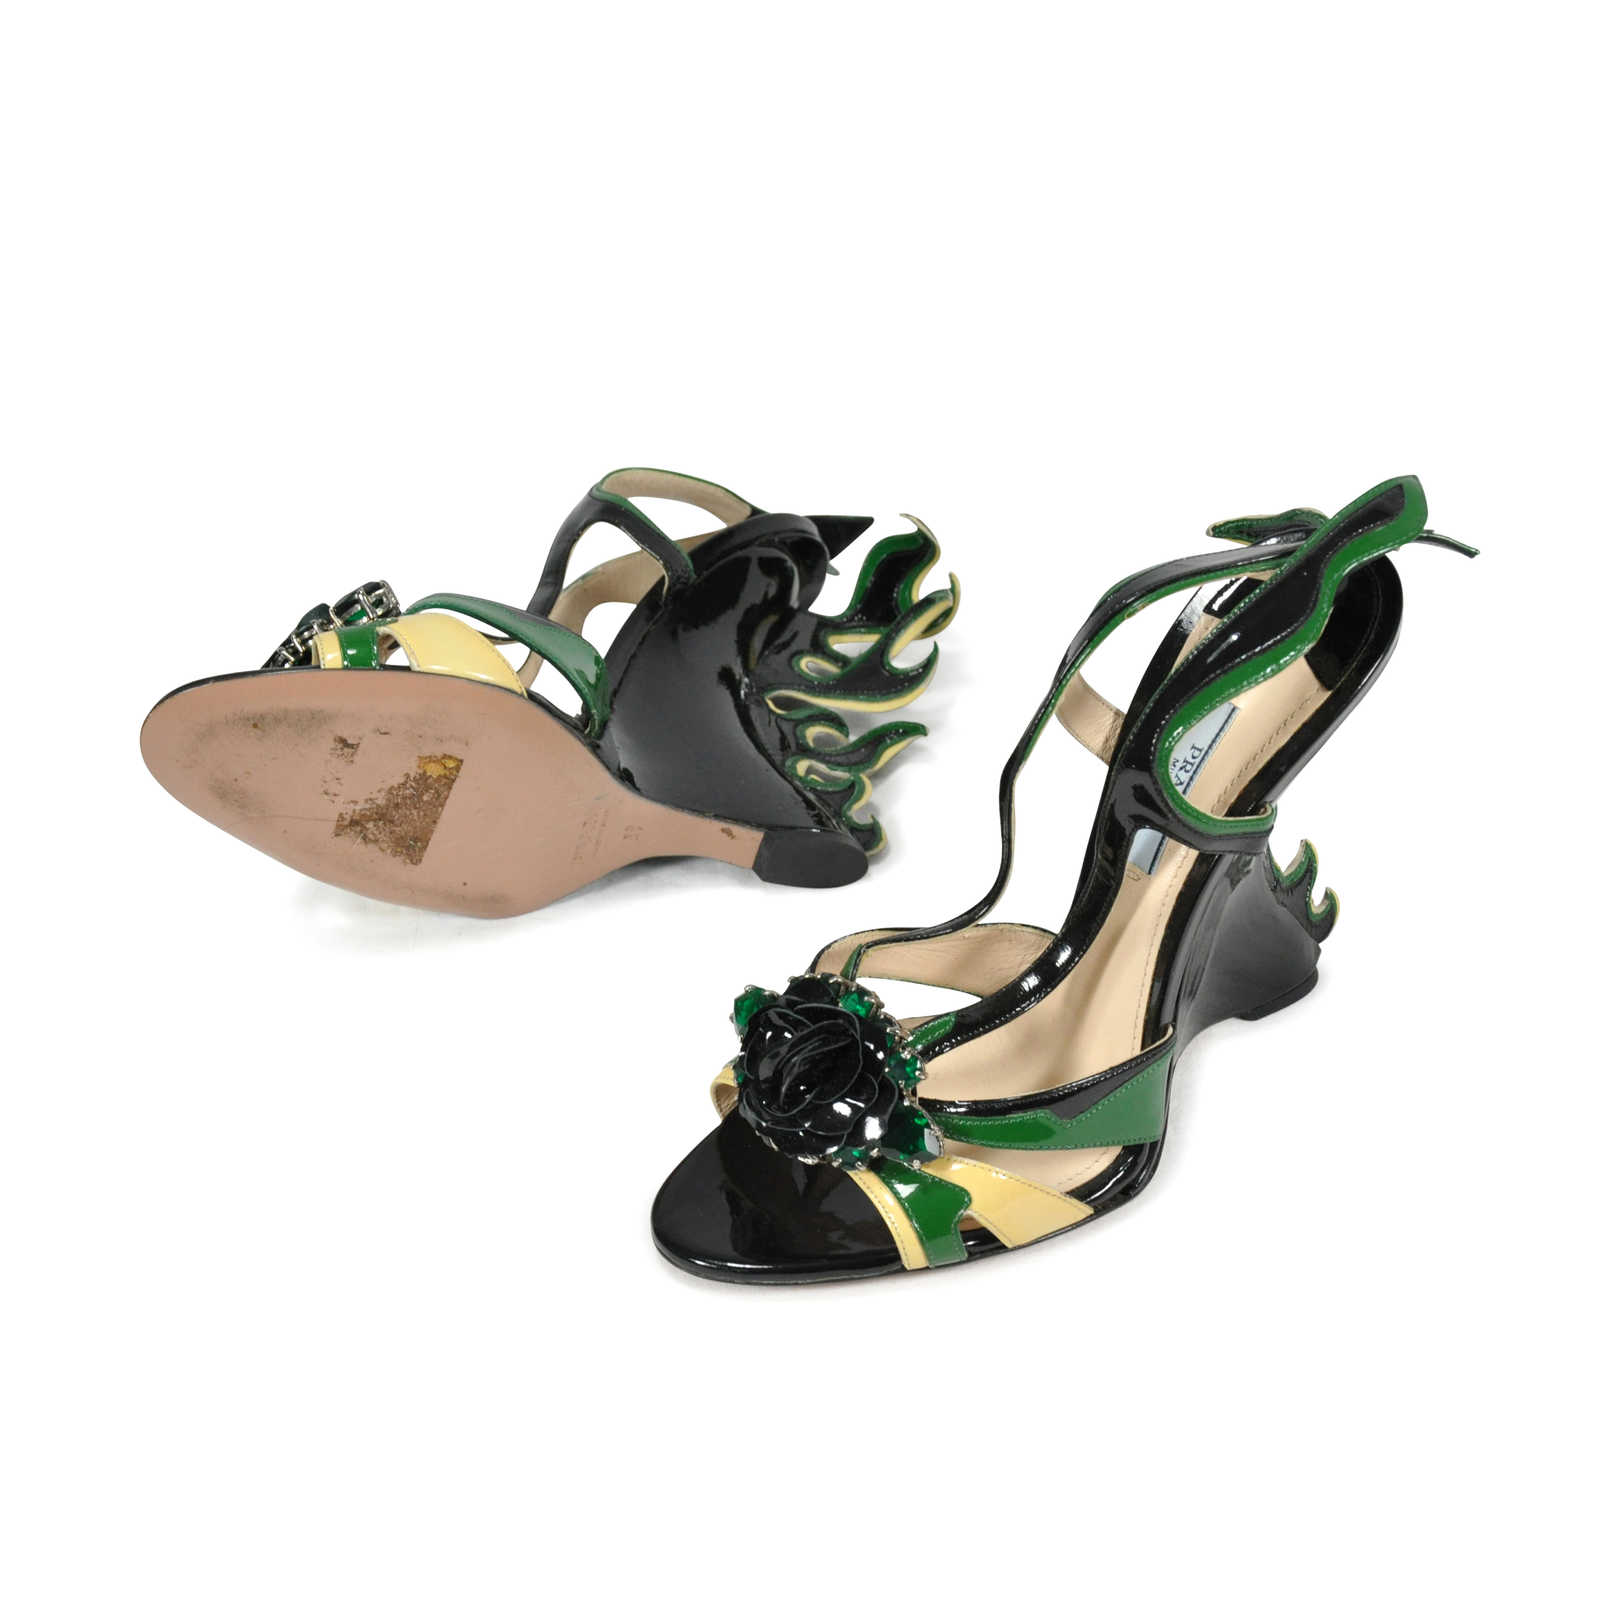 3711f689cffe ... Authentic Pre Owned Prada Flame Wedge Sandals (PSS-244-00006) -  Thumbnail ...